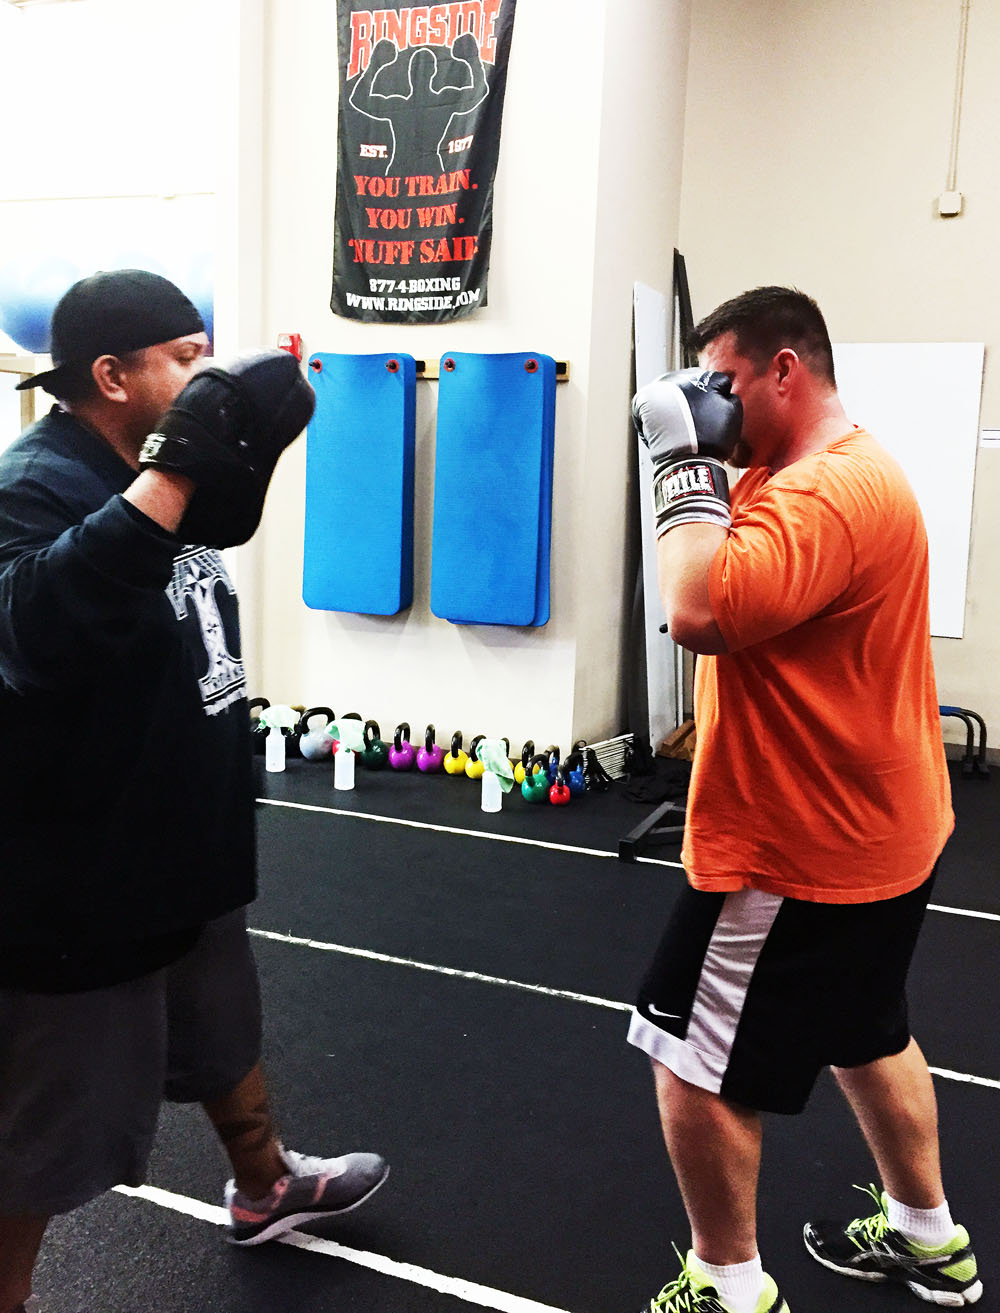 Personal Trainer - Training with a Personal Trainer - Boxing Training at an upscale boxing gym